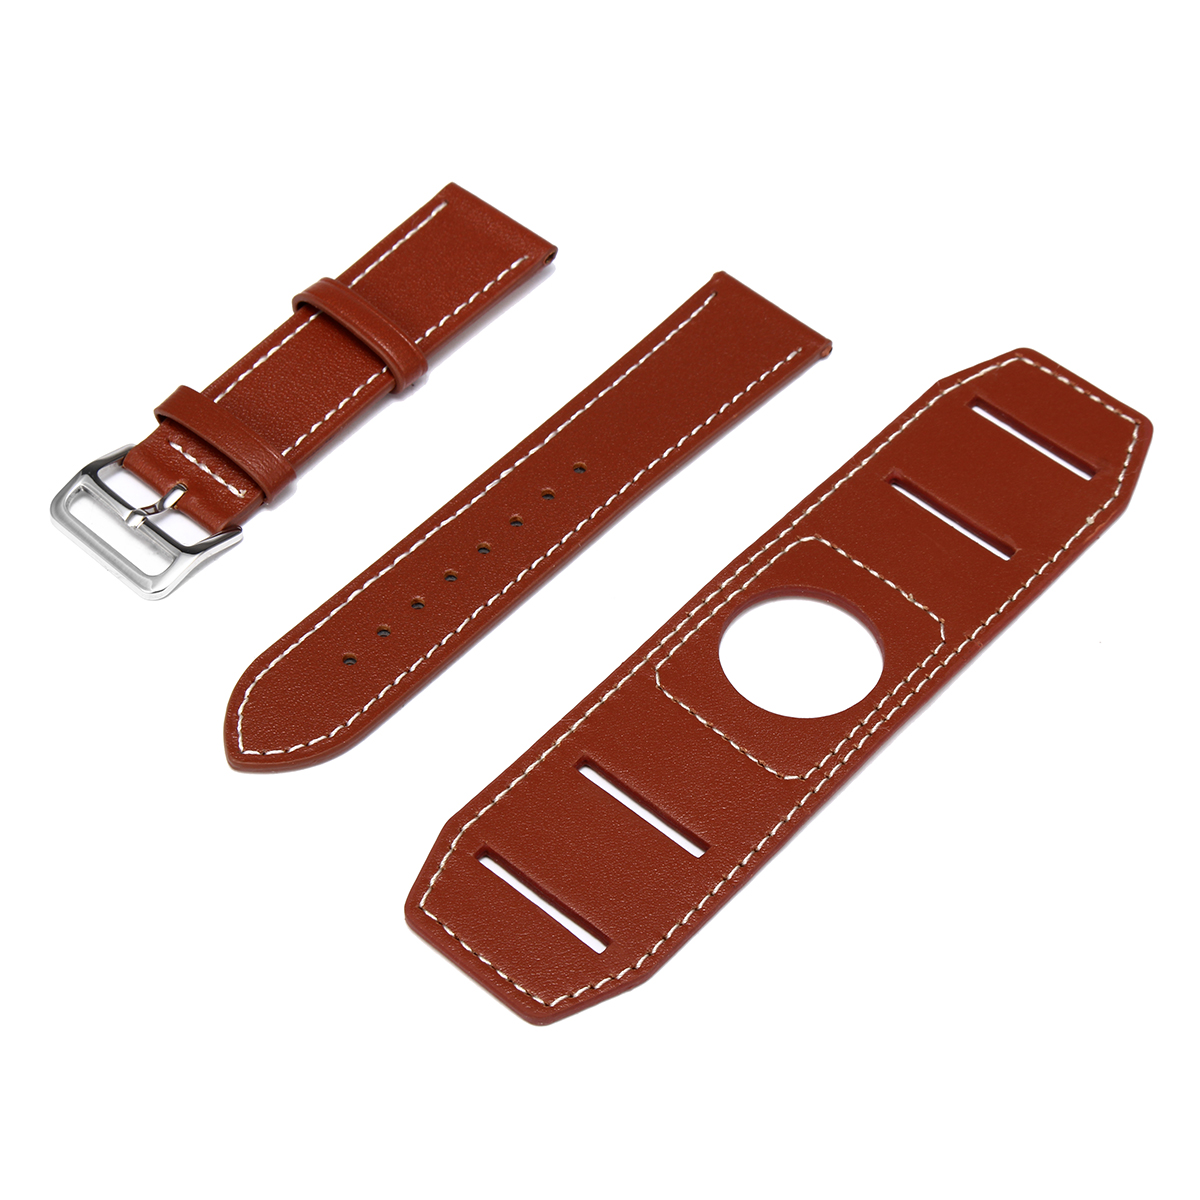 Classic-Genuine-Leather-Strap-Bracelet-Watch-Band-For-Apple-Watch-iWatch-42mm